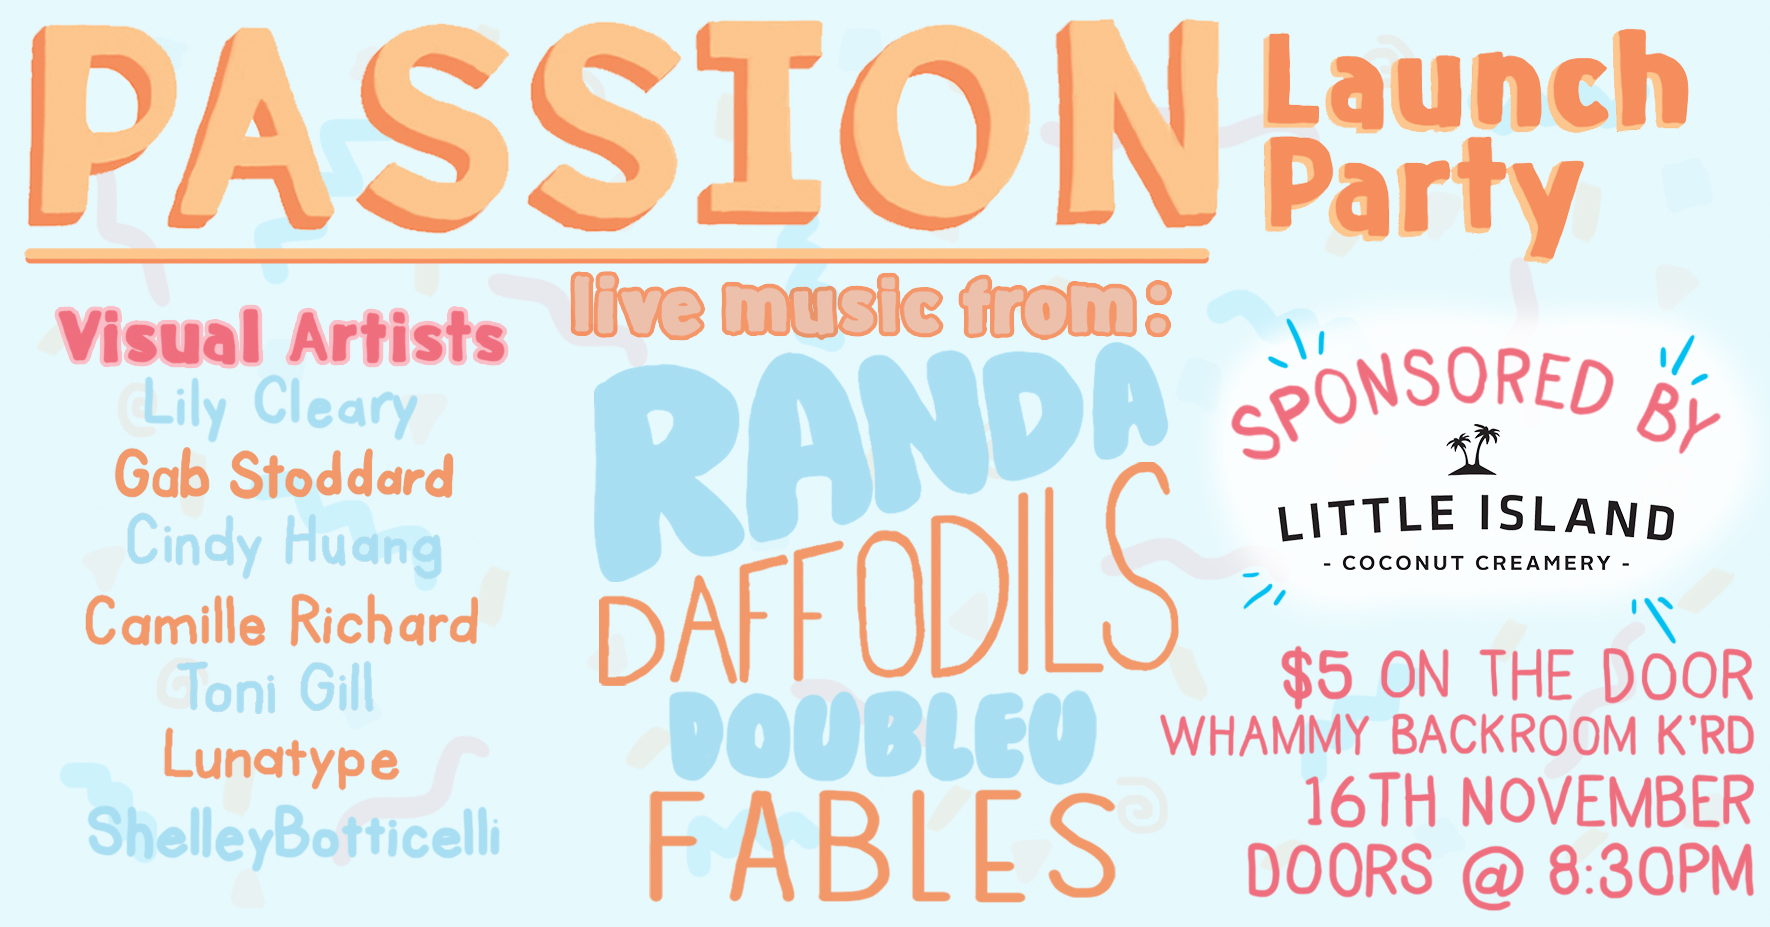 Passion Launch Party - Randa, Daffodils, Doubleu, Fables